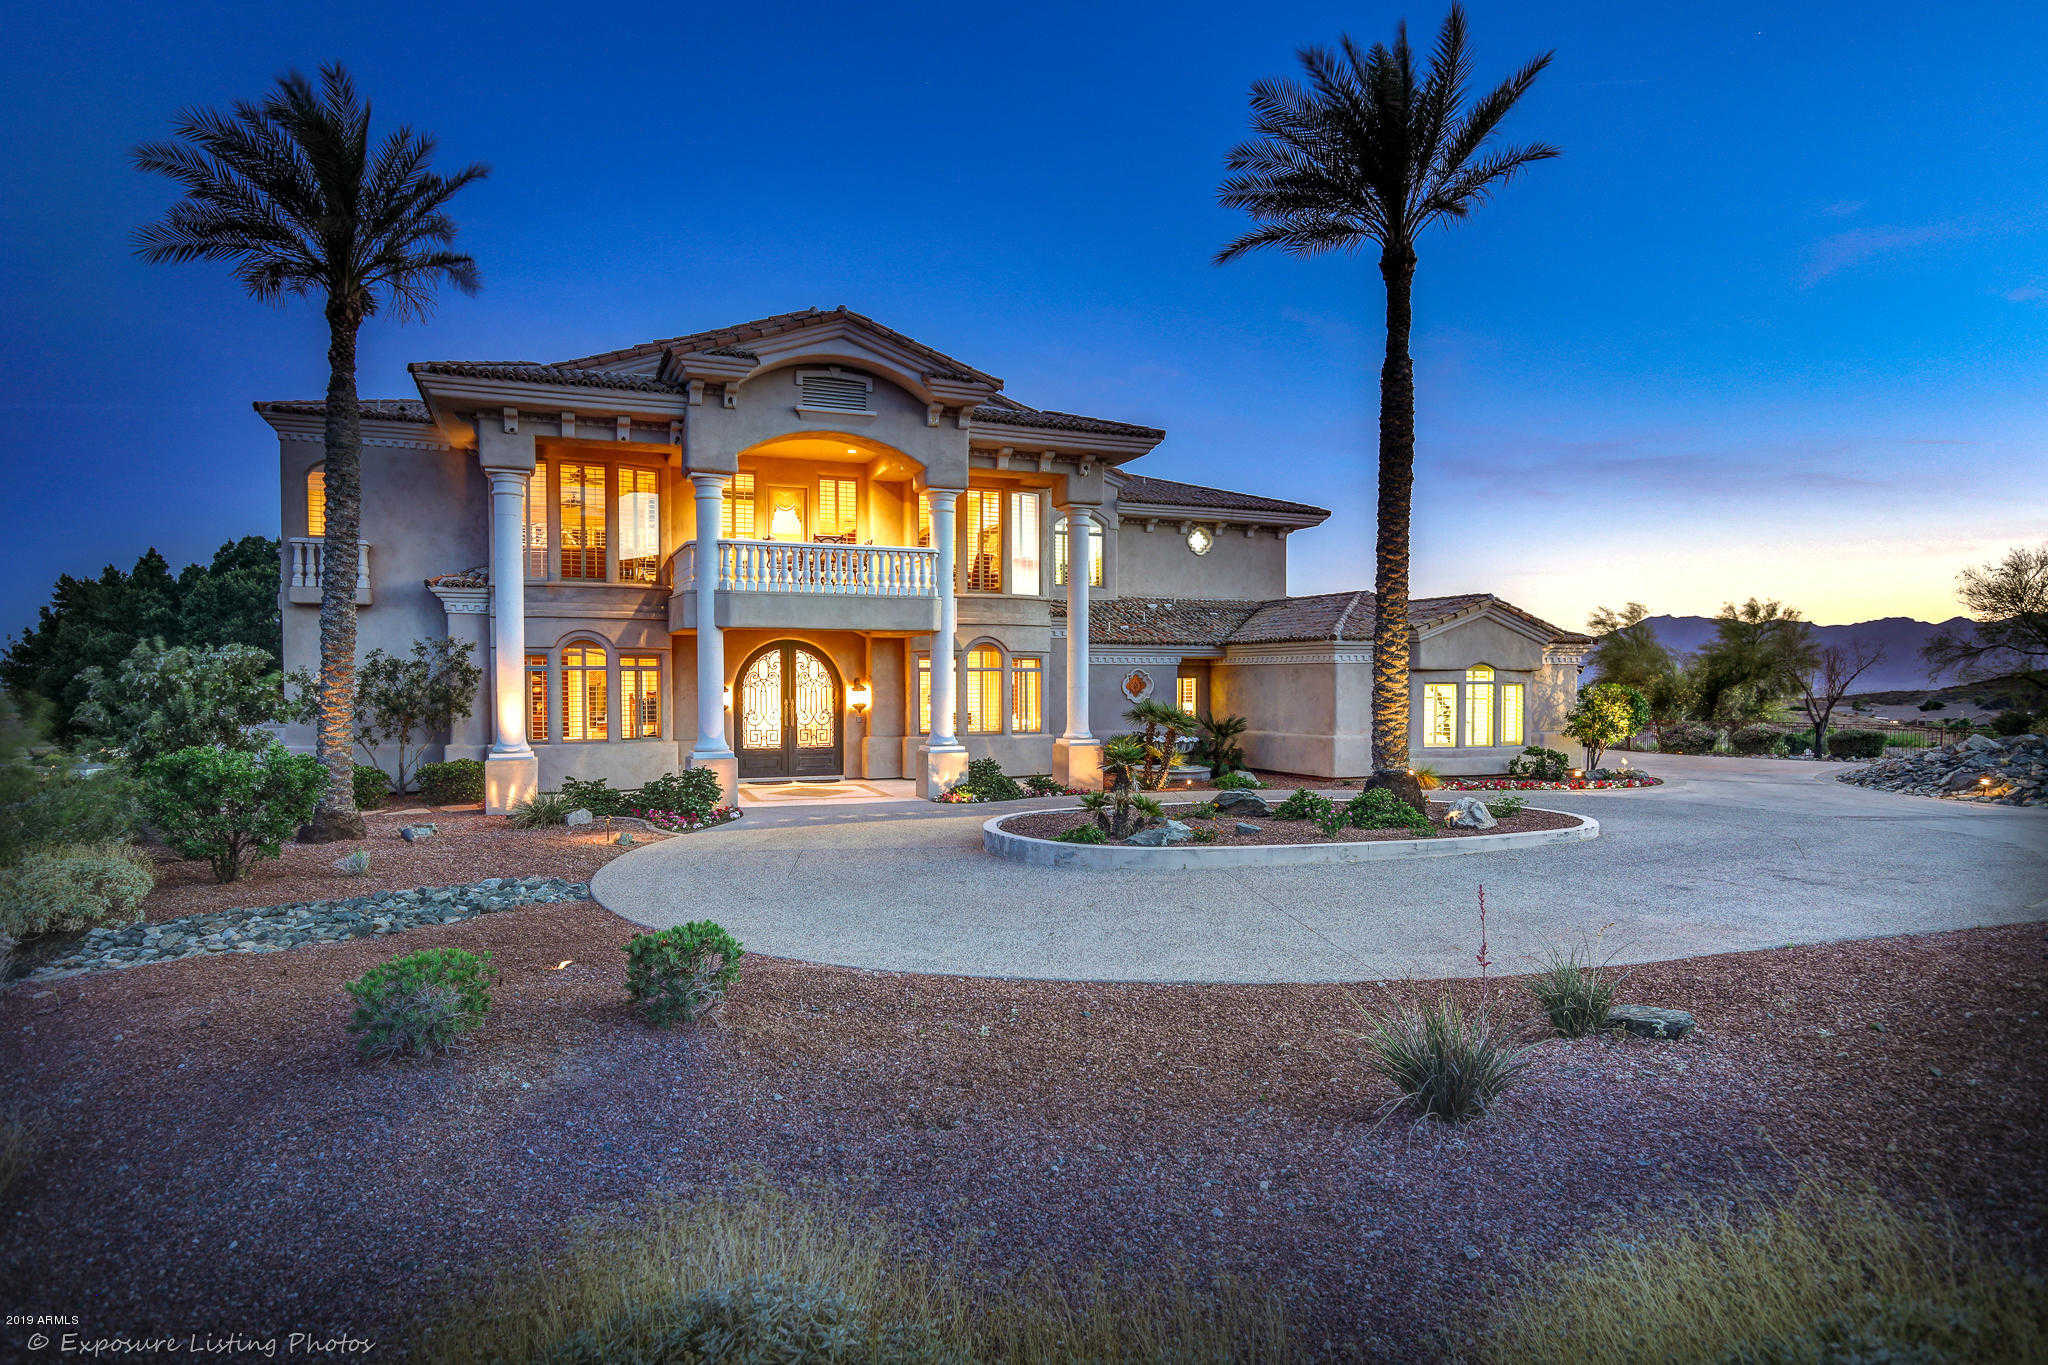 Groovy Foothills Golf Club Homes For Sale In Ahwatukee Marcella Beutiful Home Inspiration Ommitmahrainfo